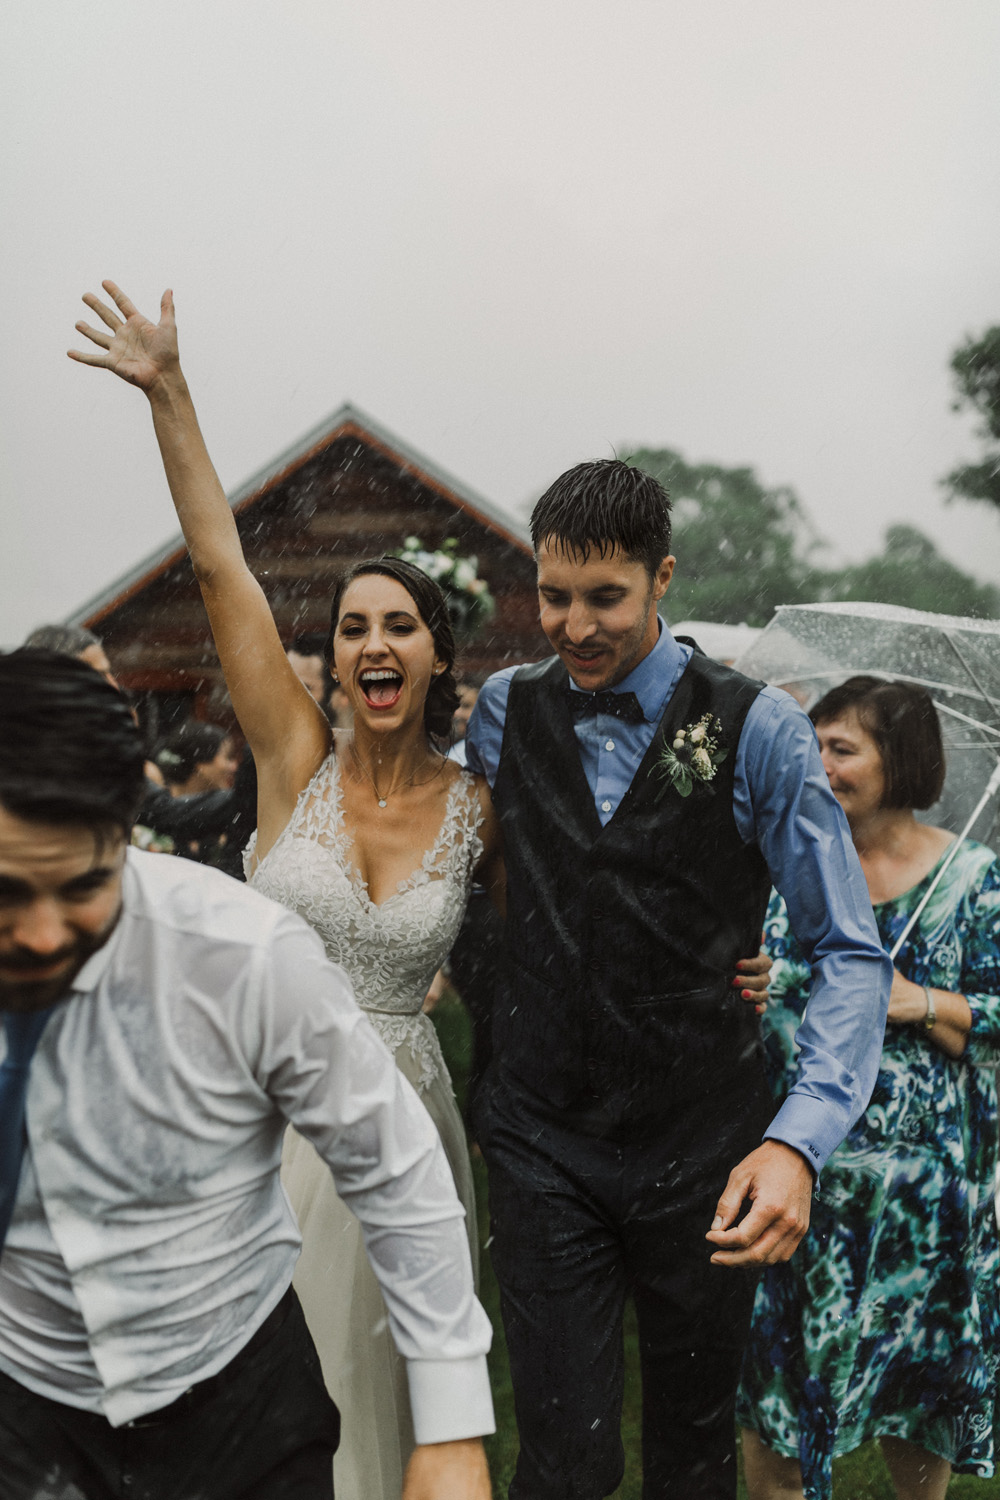 Mother nature decides to pour on your wedding day, and you get soaked while walking down the aisle? I'll be right there cheering you on, just as soaked as you because dry wedding attire is overrated. -